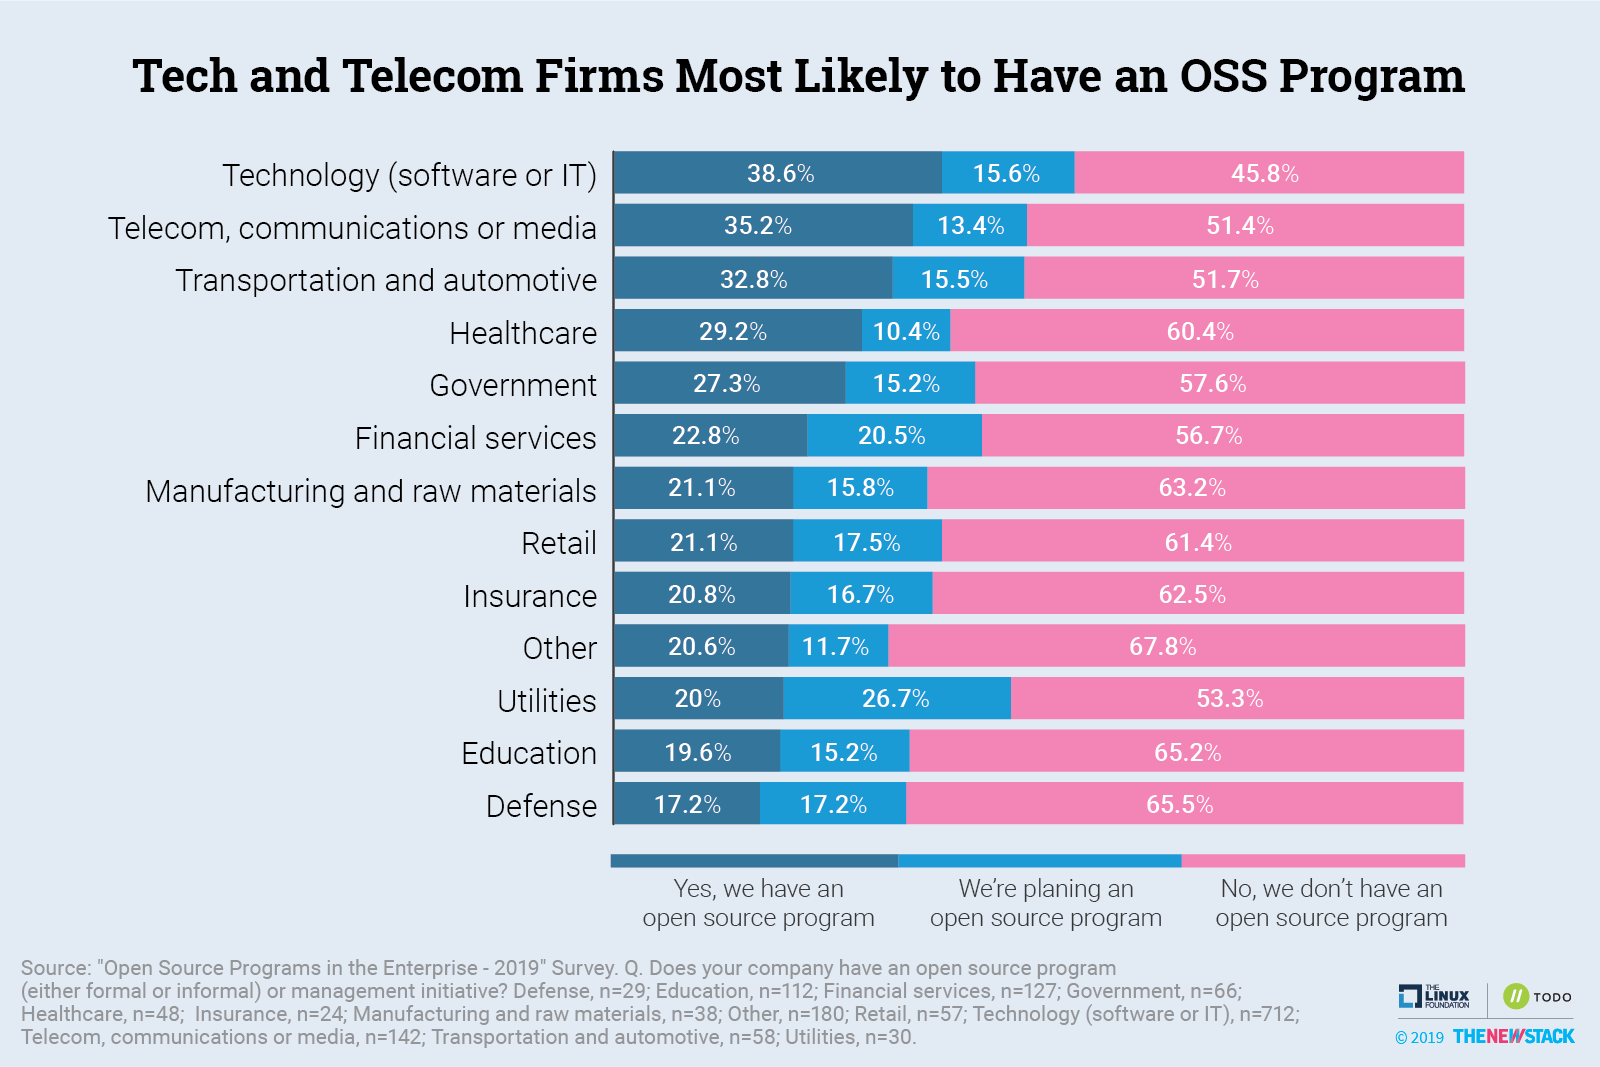 Tech and Telecom Firms Most Likely to Have an OSS Program